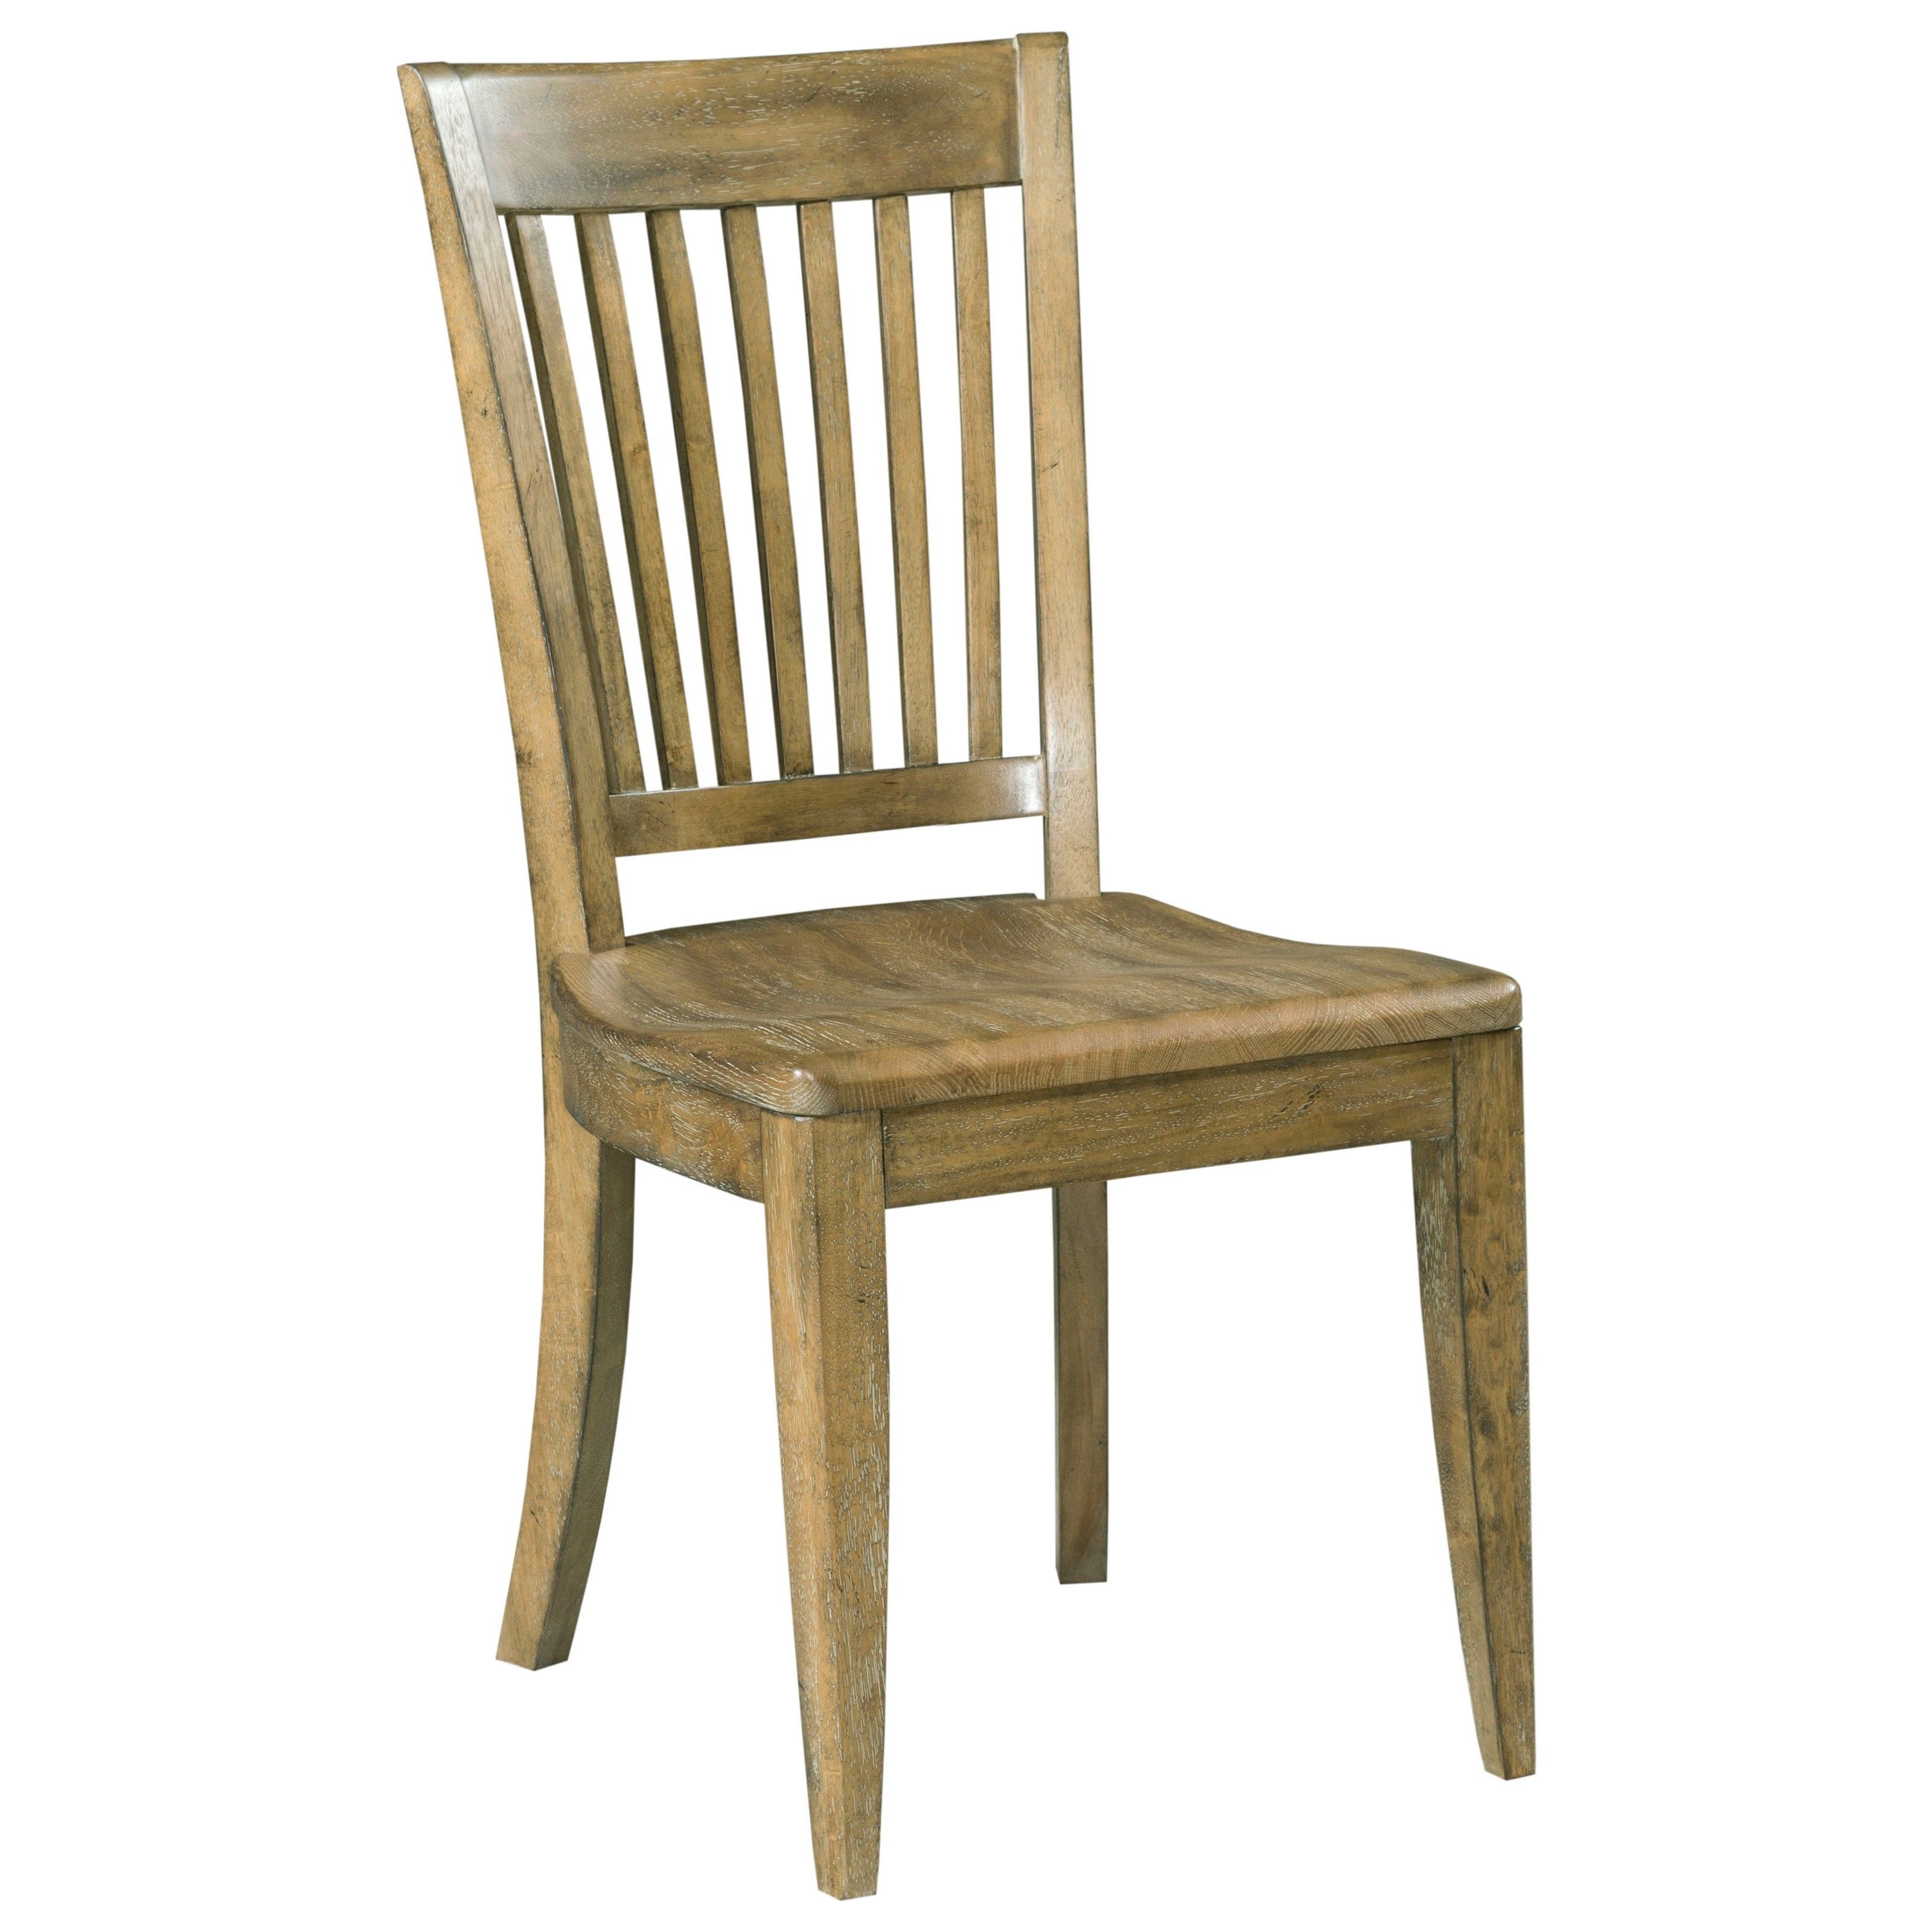 Nook Chair Kincaid Furniture The Nook 663 622 Solid Wood Slat Back